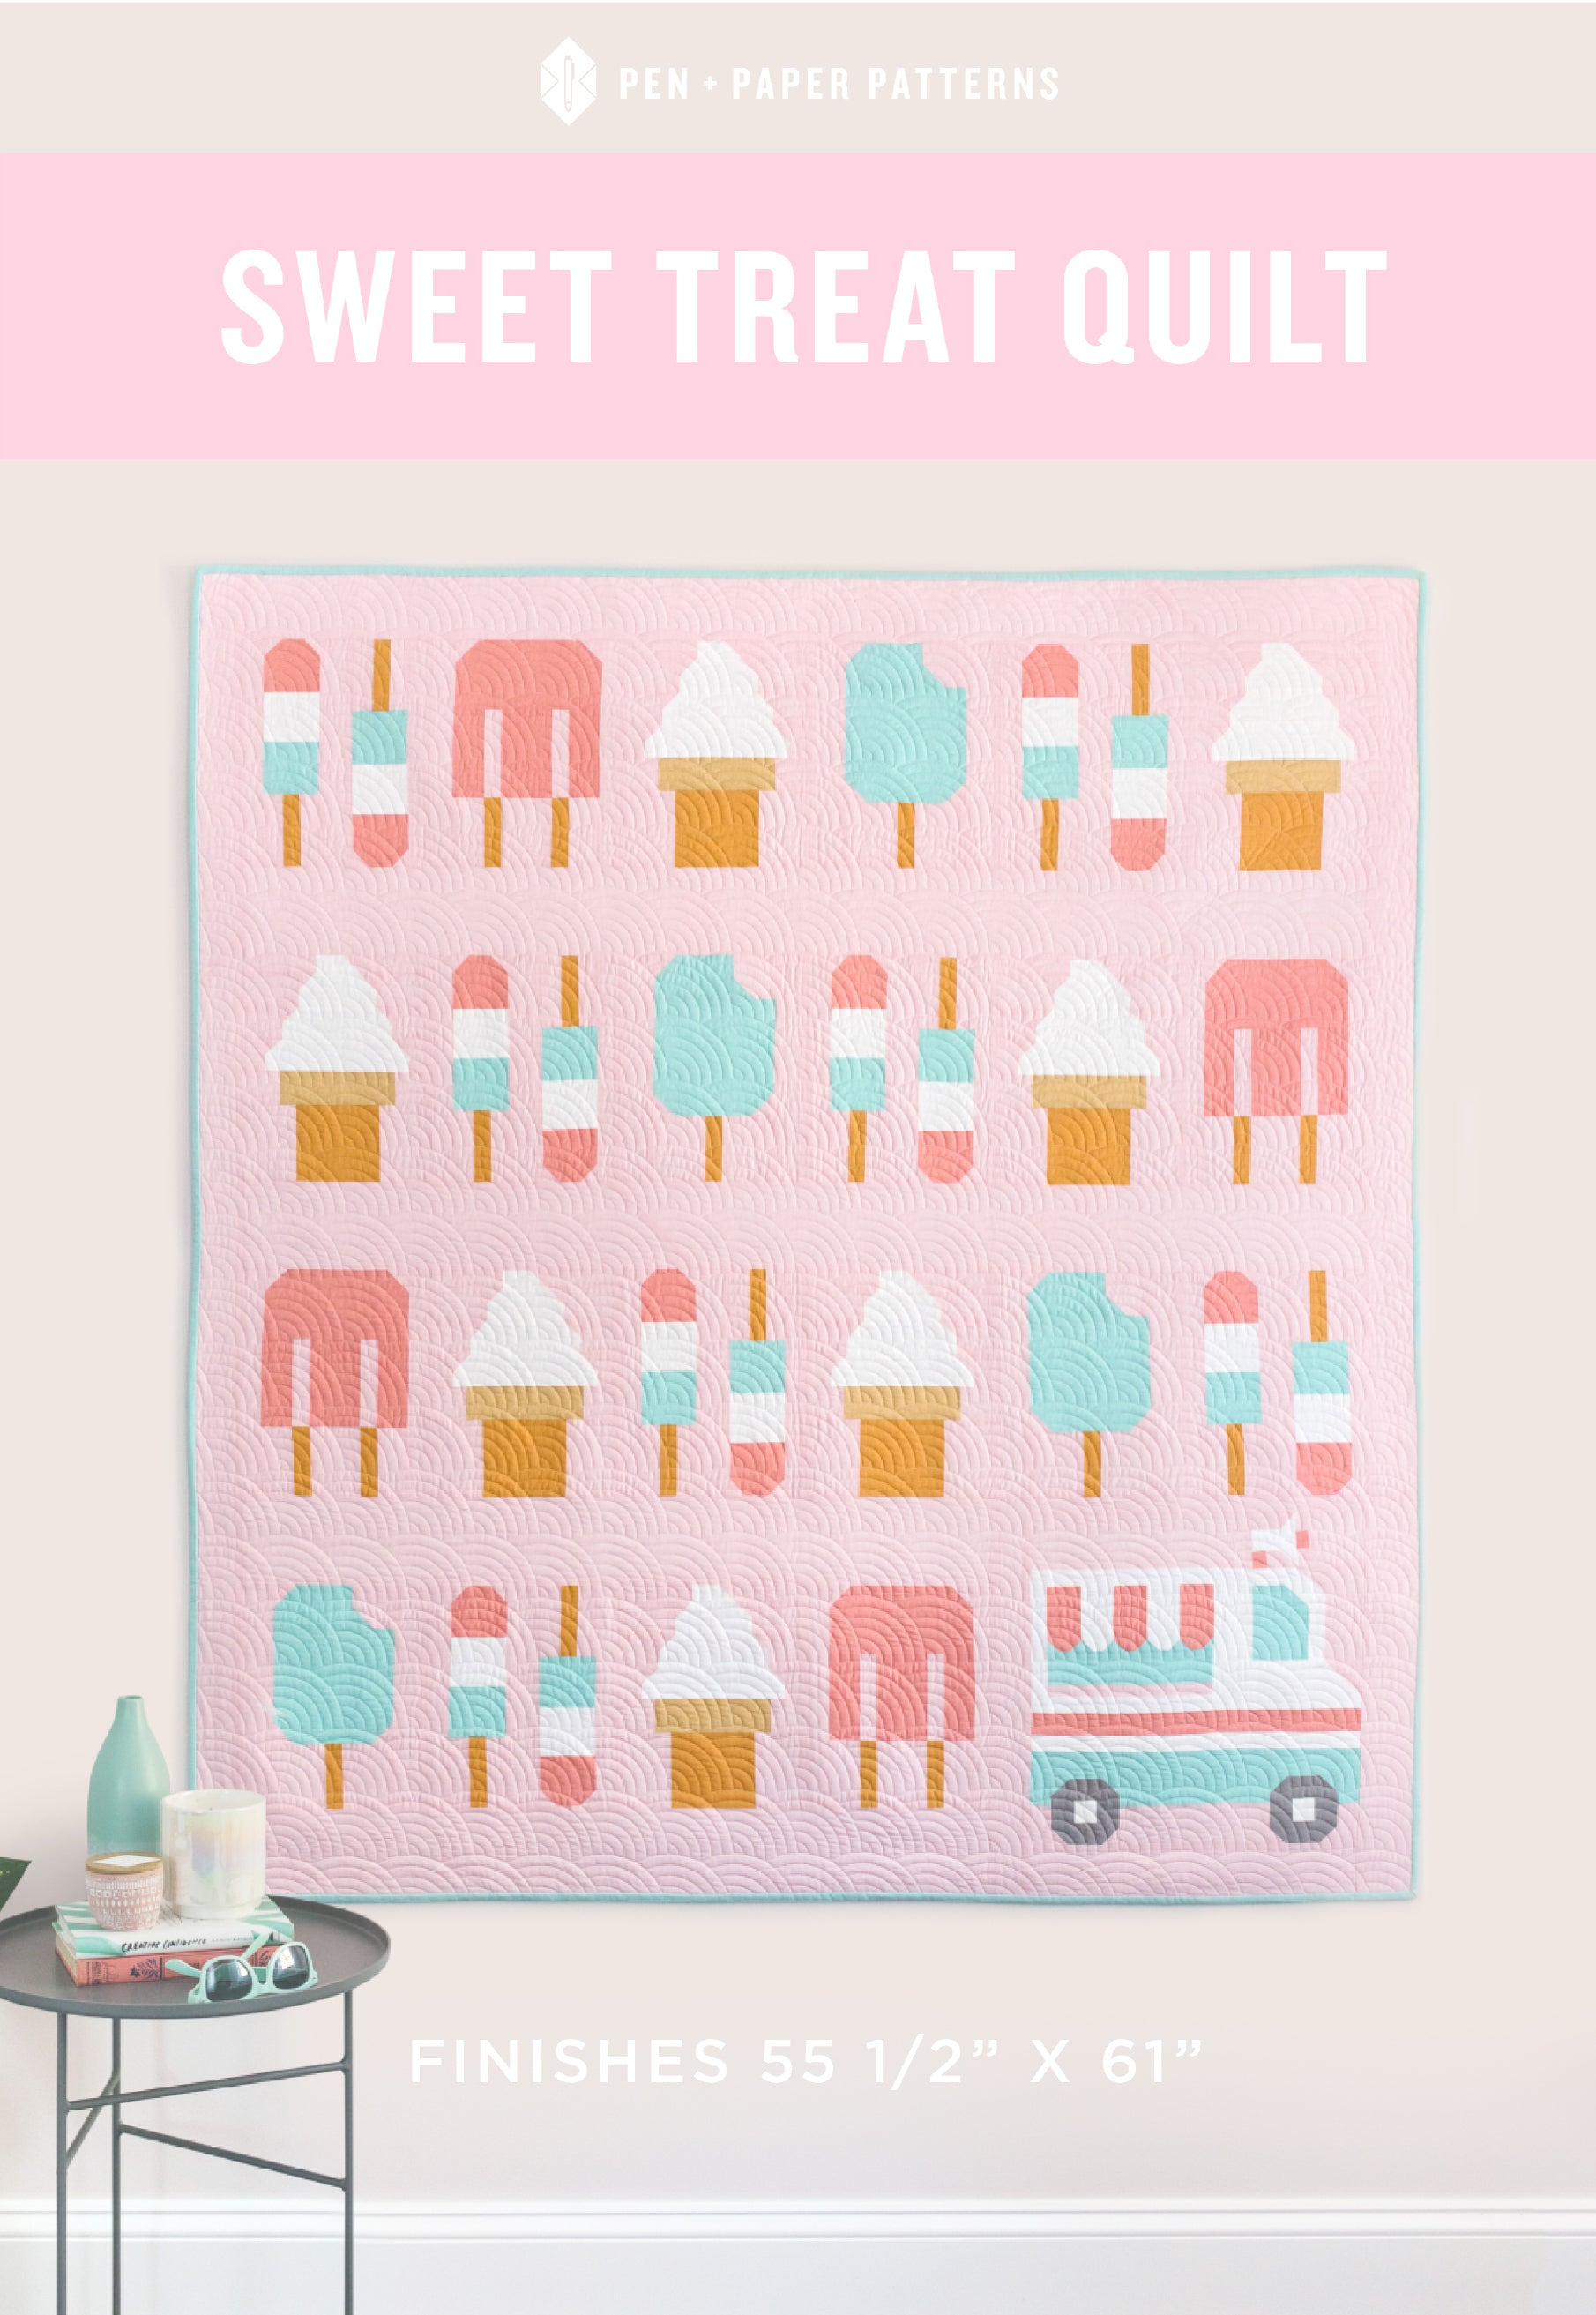 Sweet Treat Quilt Pattern by Pen and Paper Patterns